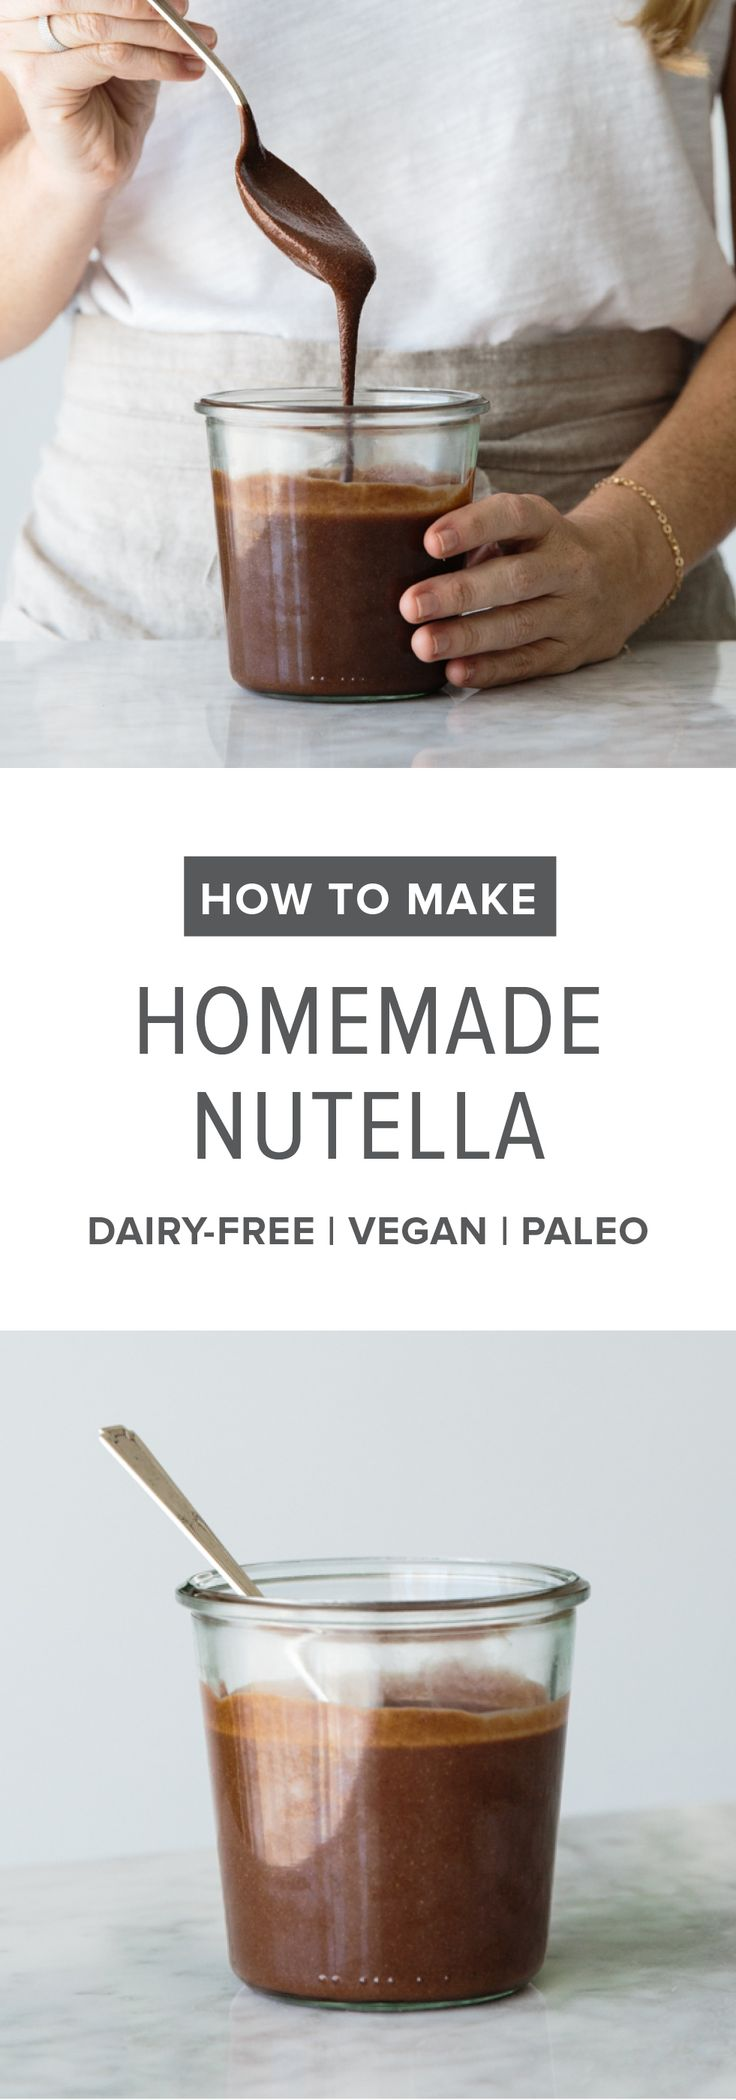 (dairy-free, vegan, paleo) How to make homemade nutella. A delicious, healthier alternative with a step-by-step tutorial video. #Nutella #Homemade #HealthyRecipes #Vegan #Paleo #DairyFree